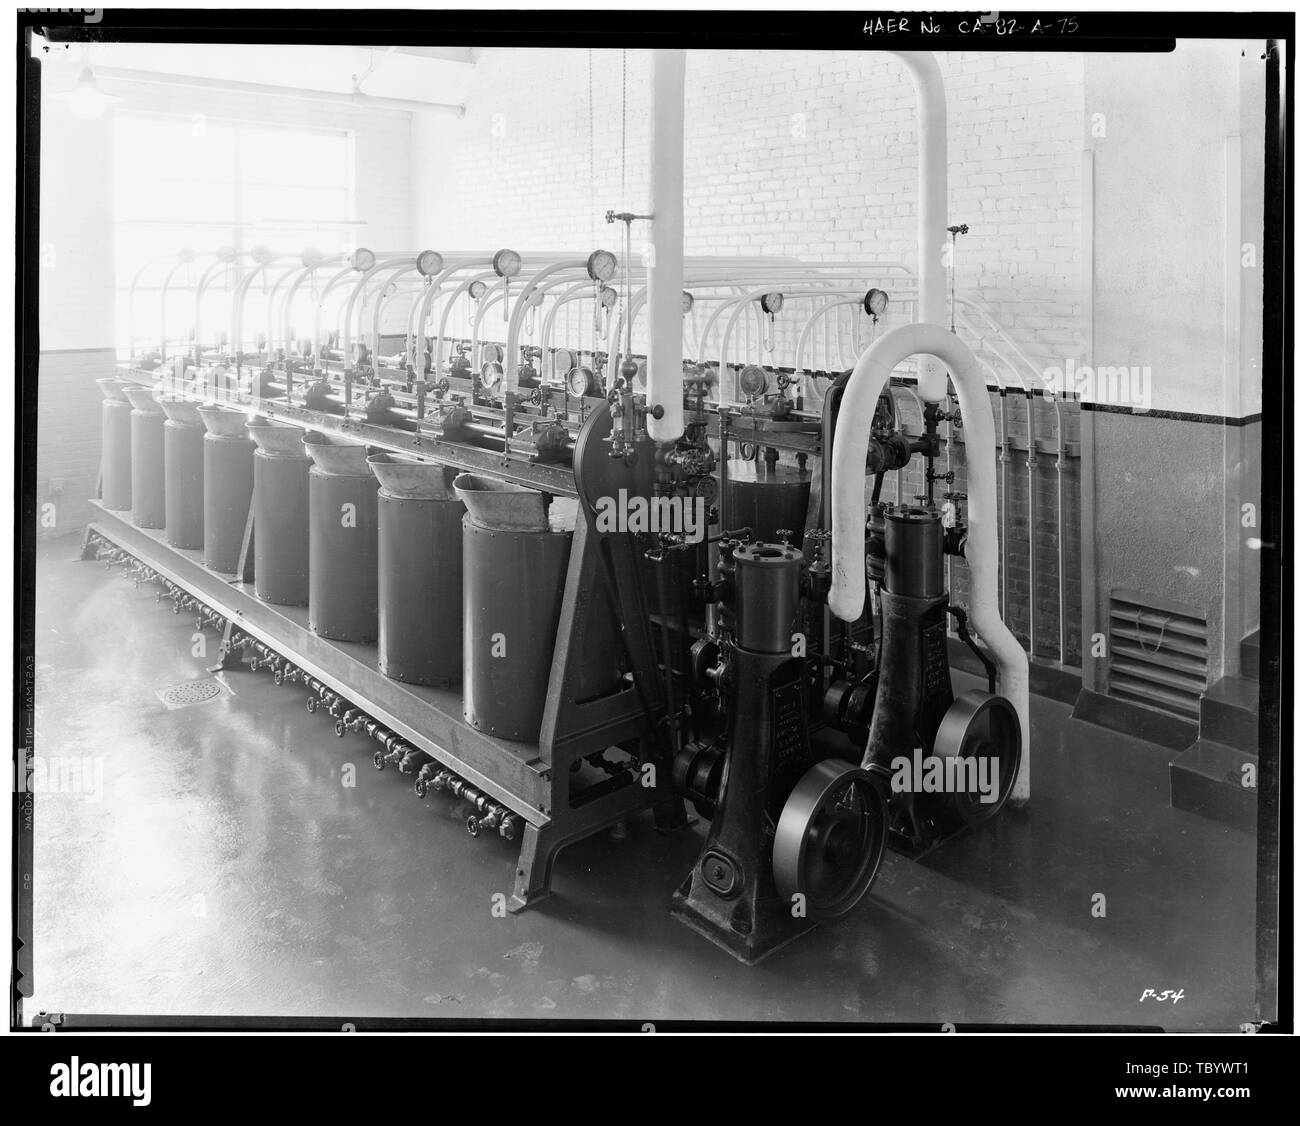 Neg. Nr. F 54, Apr 13, 1930, INTERIOROIL HAUS, Farbe UMLAUFSYSTEM Ford Motor Company Long Beach Montagewerk, Assembly Building, 700 Henry Ford Avenue, Long Beach, Los Angeles County, CA Stockbild